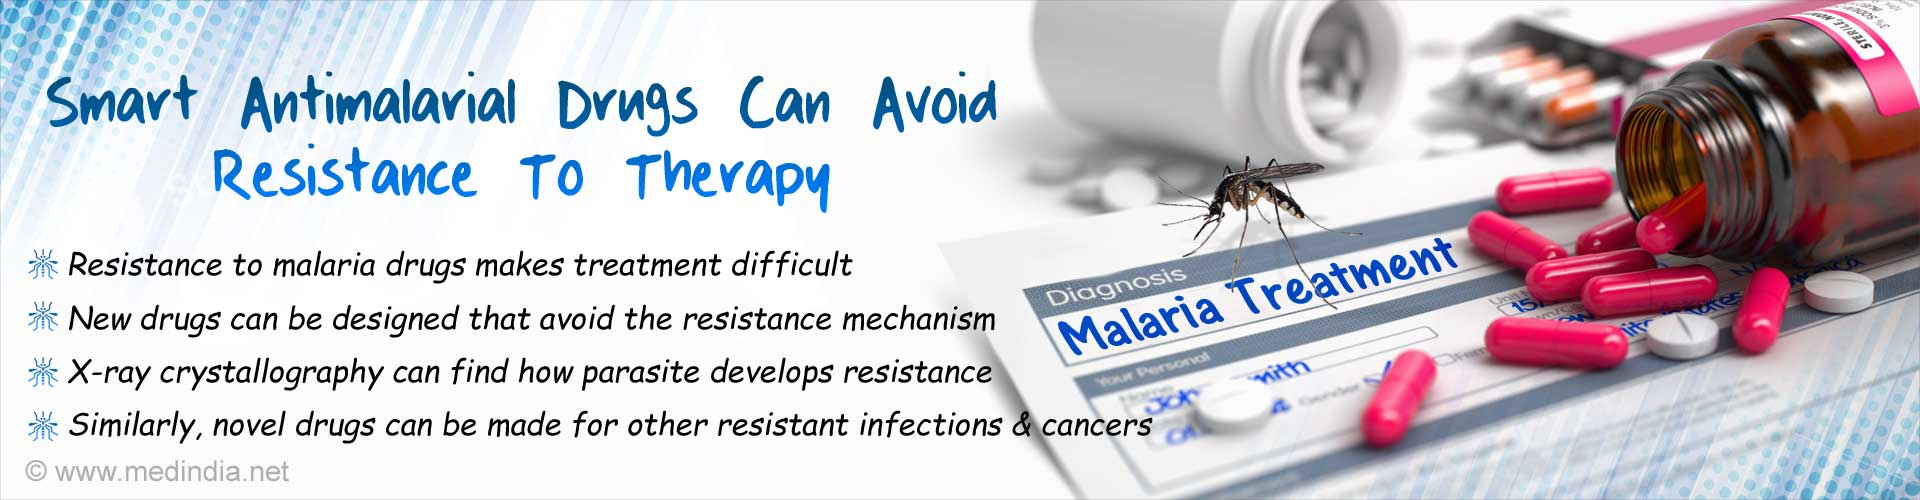 Smart antimalarial drugs can avoid resistance to therapy. Resistance to malarial drugs makes treatment difficult. New drugs can be designed that avoid the resistance mechanism. X-ray crystallography can find how parasite develops resistance. Similarly, novel drugs can be made for other resistant infections and cancers.